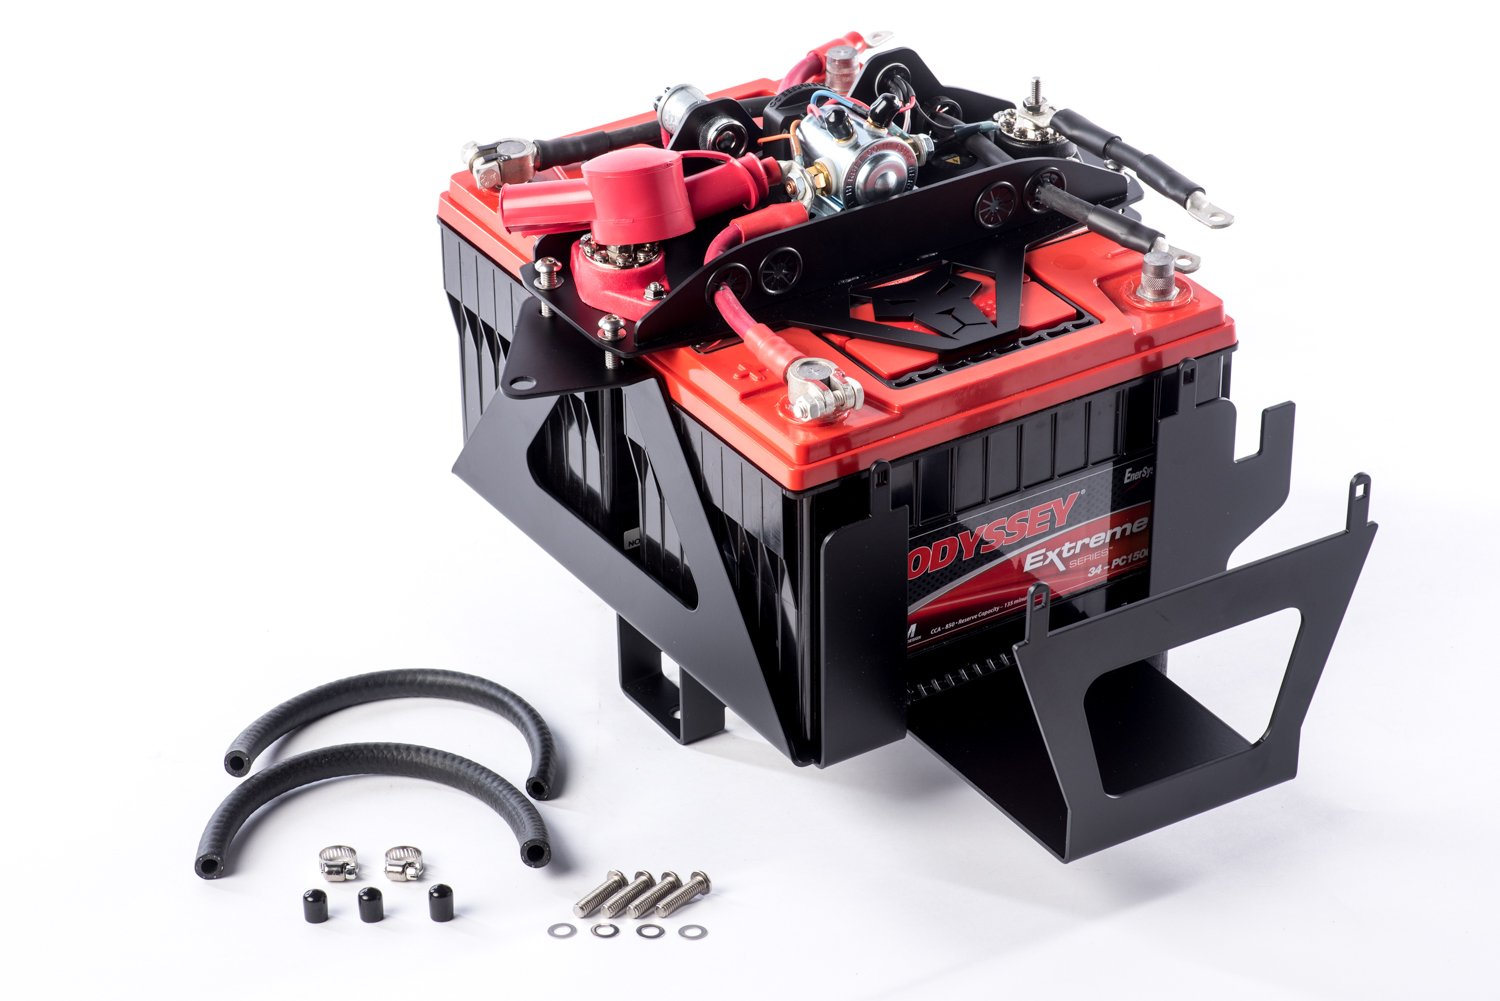 Genesis Offroad Jeep JK Dual Battery Kit with 85 AMP Isolator for 2012+ by Genesis Offroad